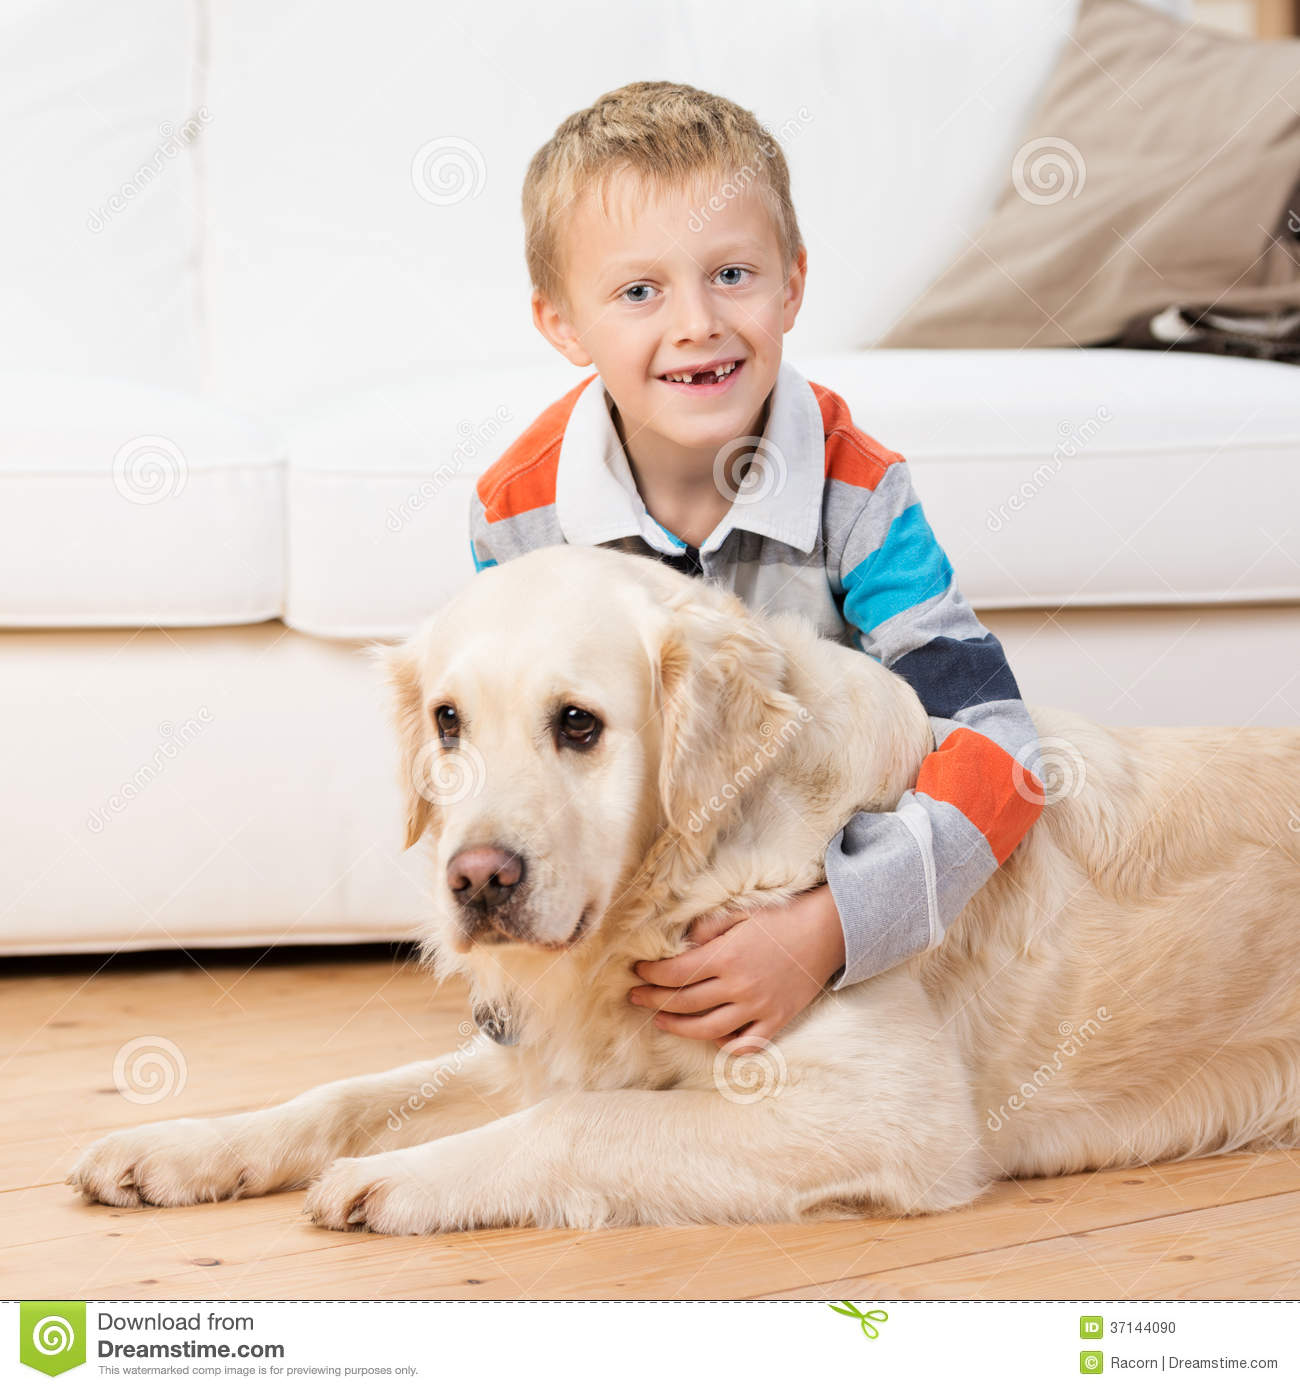 Smiling little boy playing with a golden retriever